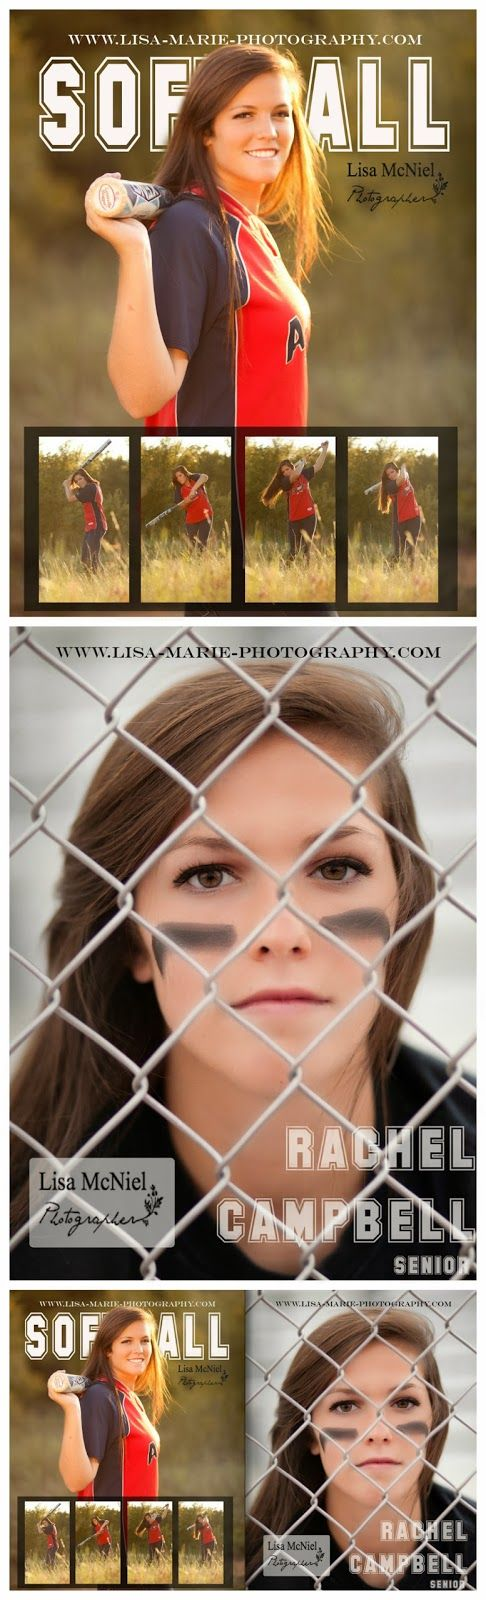 Softball senior picture ideas, click the pic for all sports and activity photography inspiration #Portraits #Seniorpictures #Softball www.Lisa-Marie-Photography.com, North Texas, Dallas Photographer